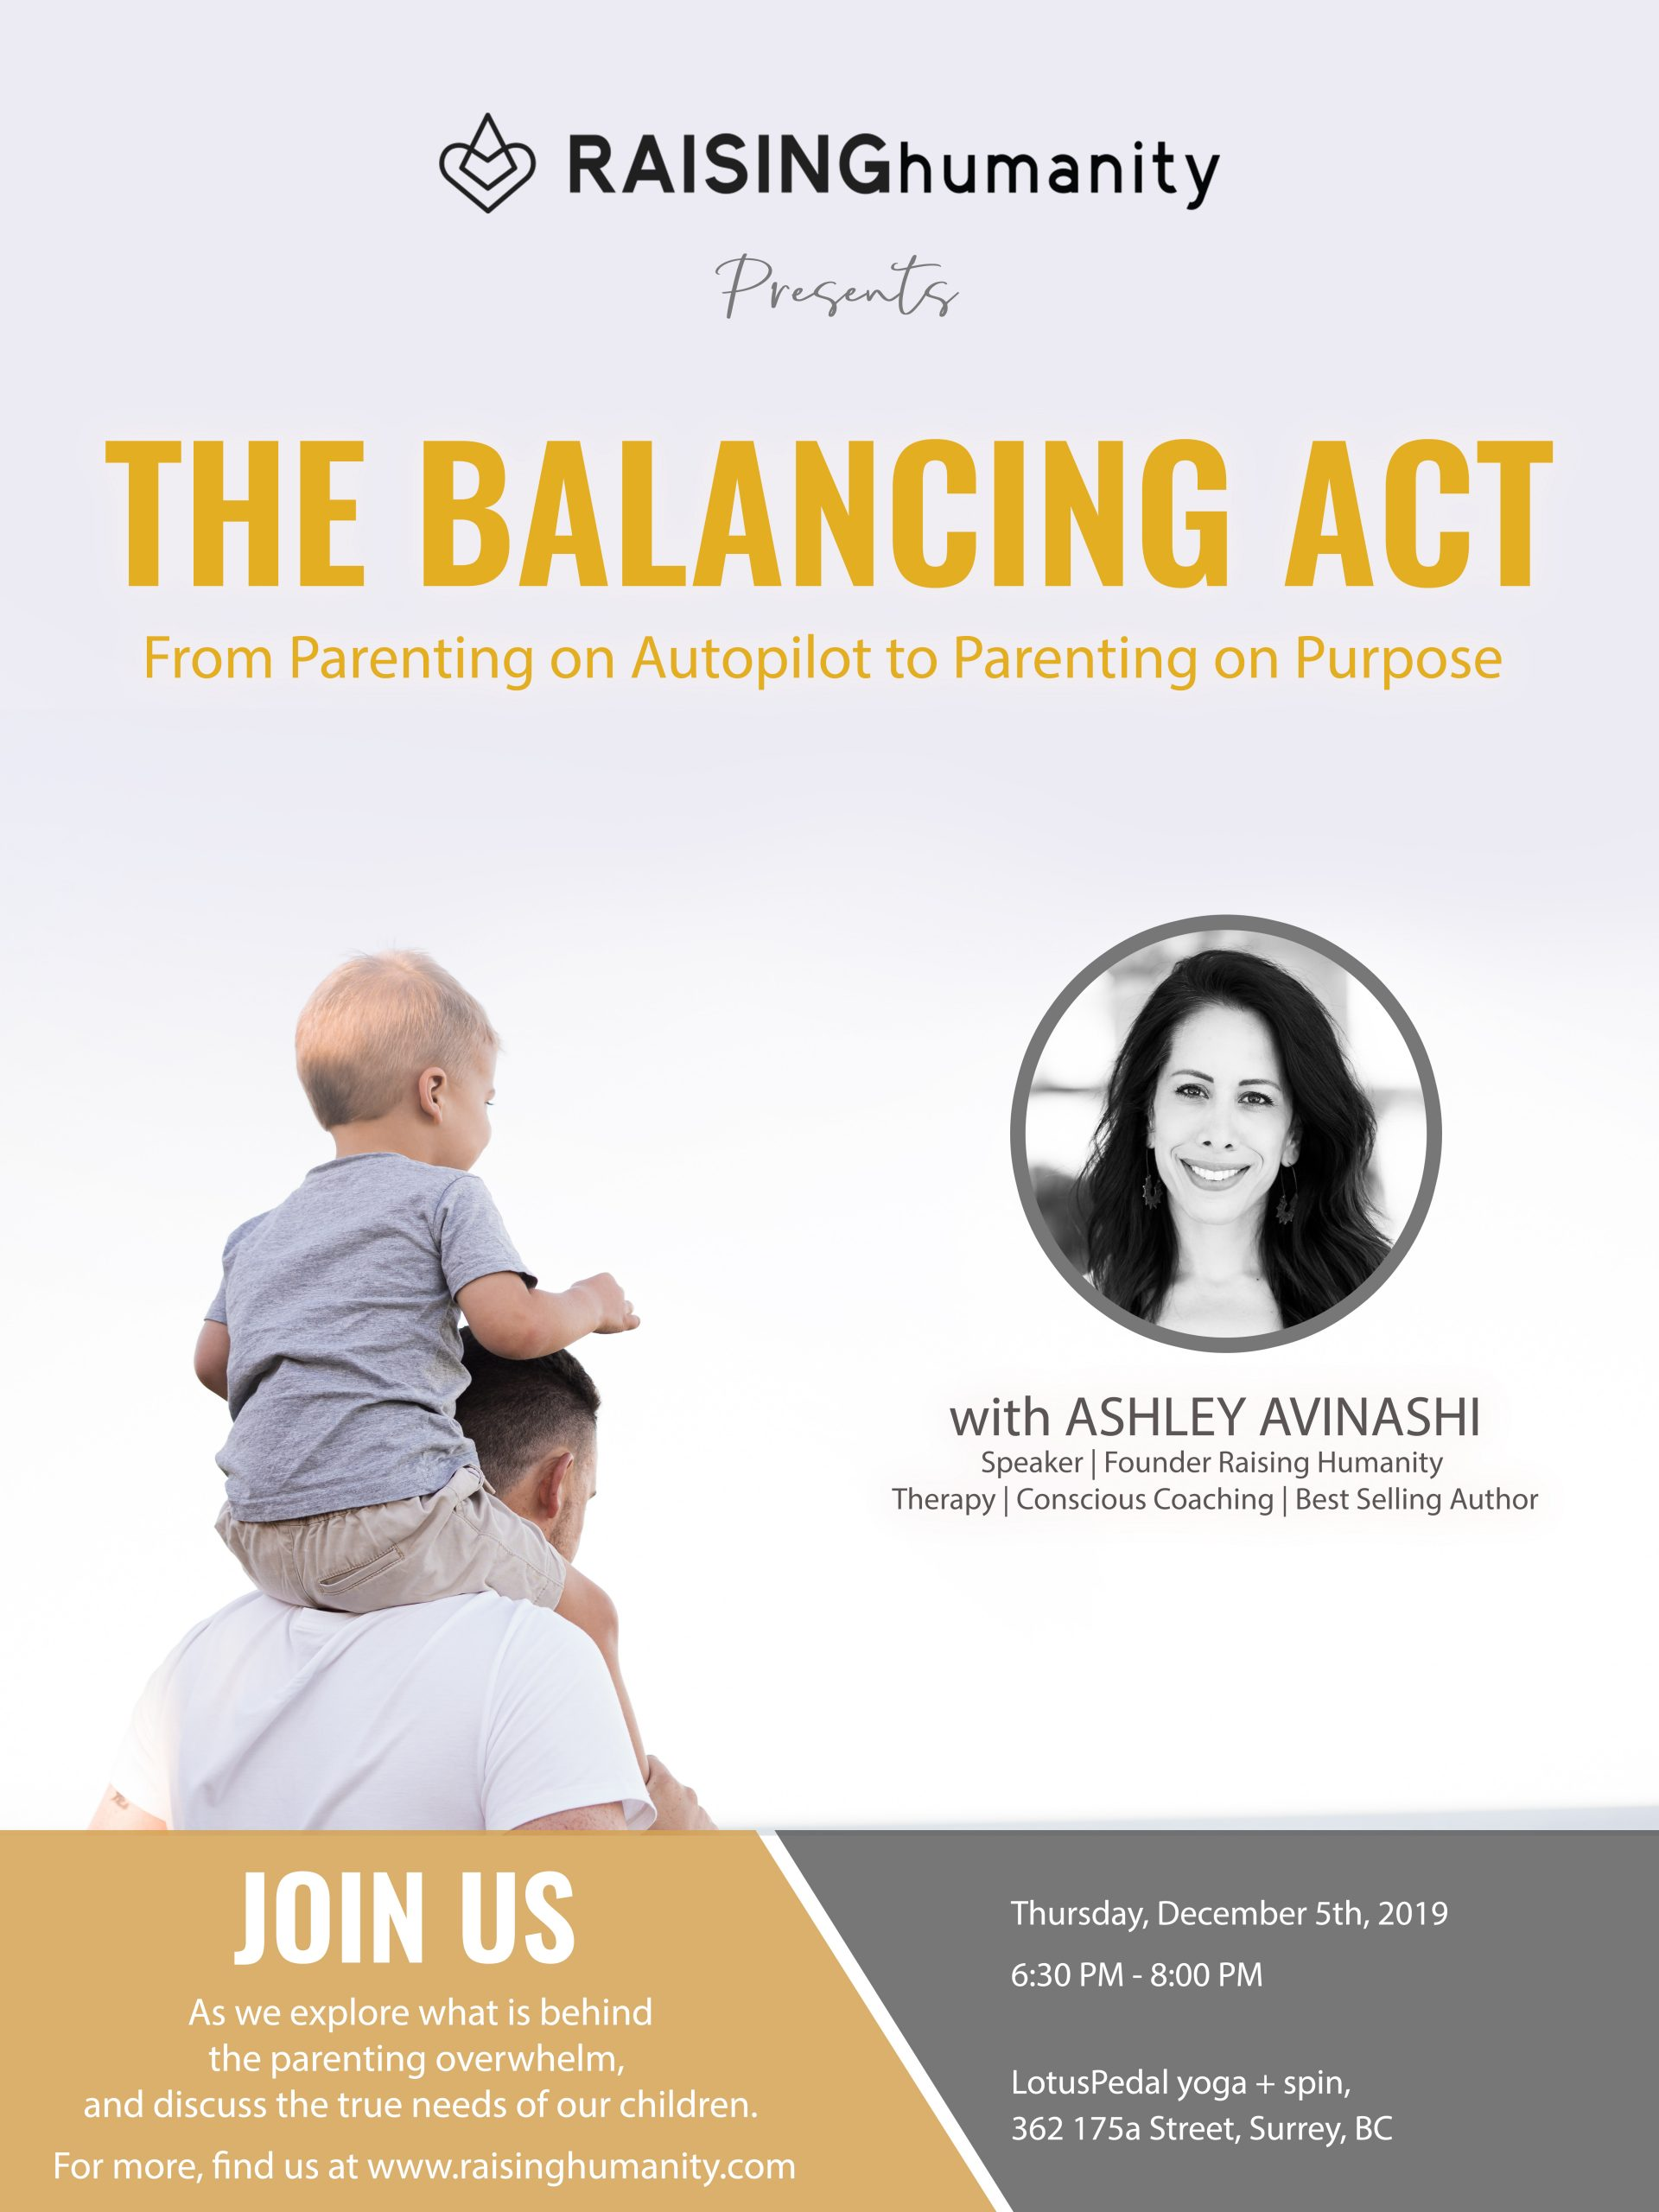 The Balancing Act: From Parenting on Autopilot to Parenting on Purpose